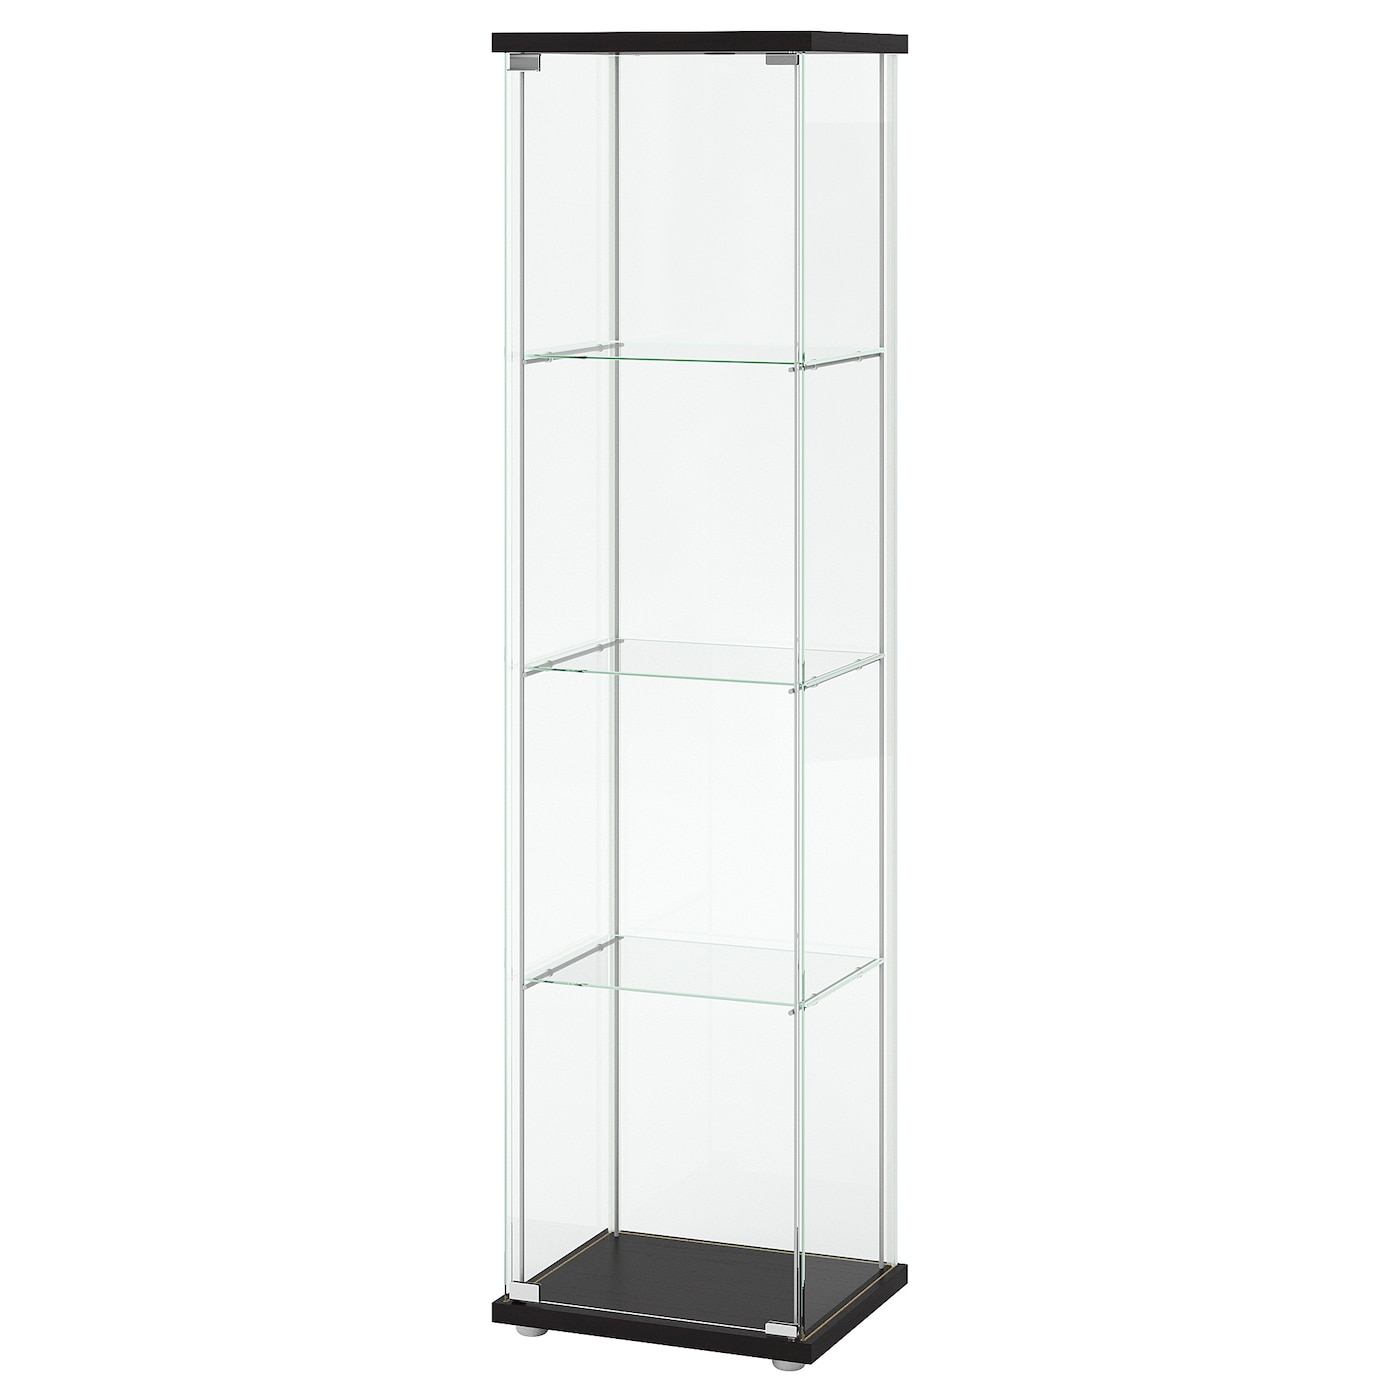 Ikea detolf glass door cabinet